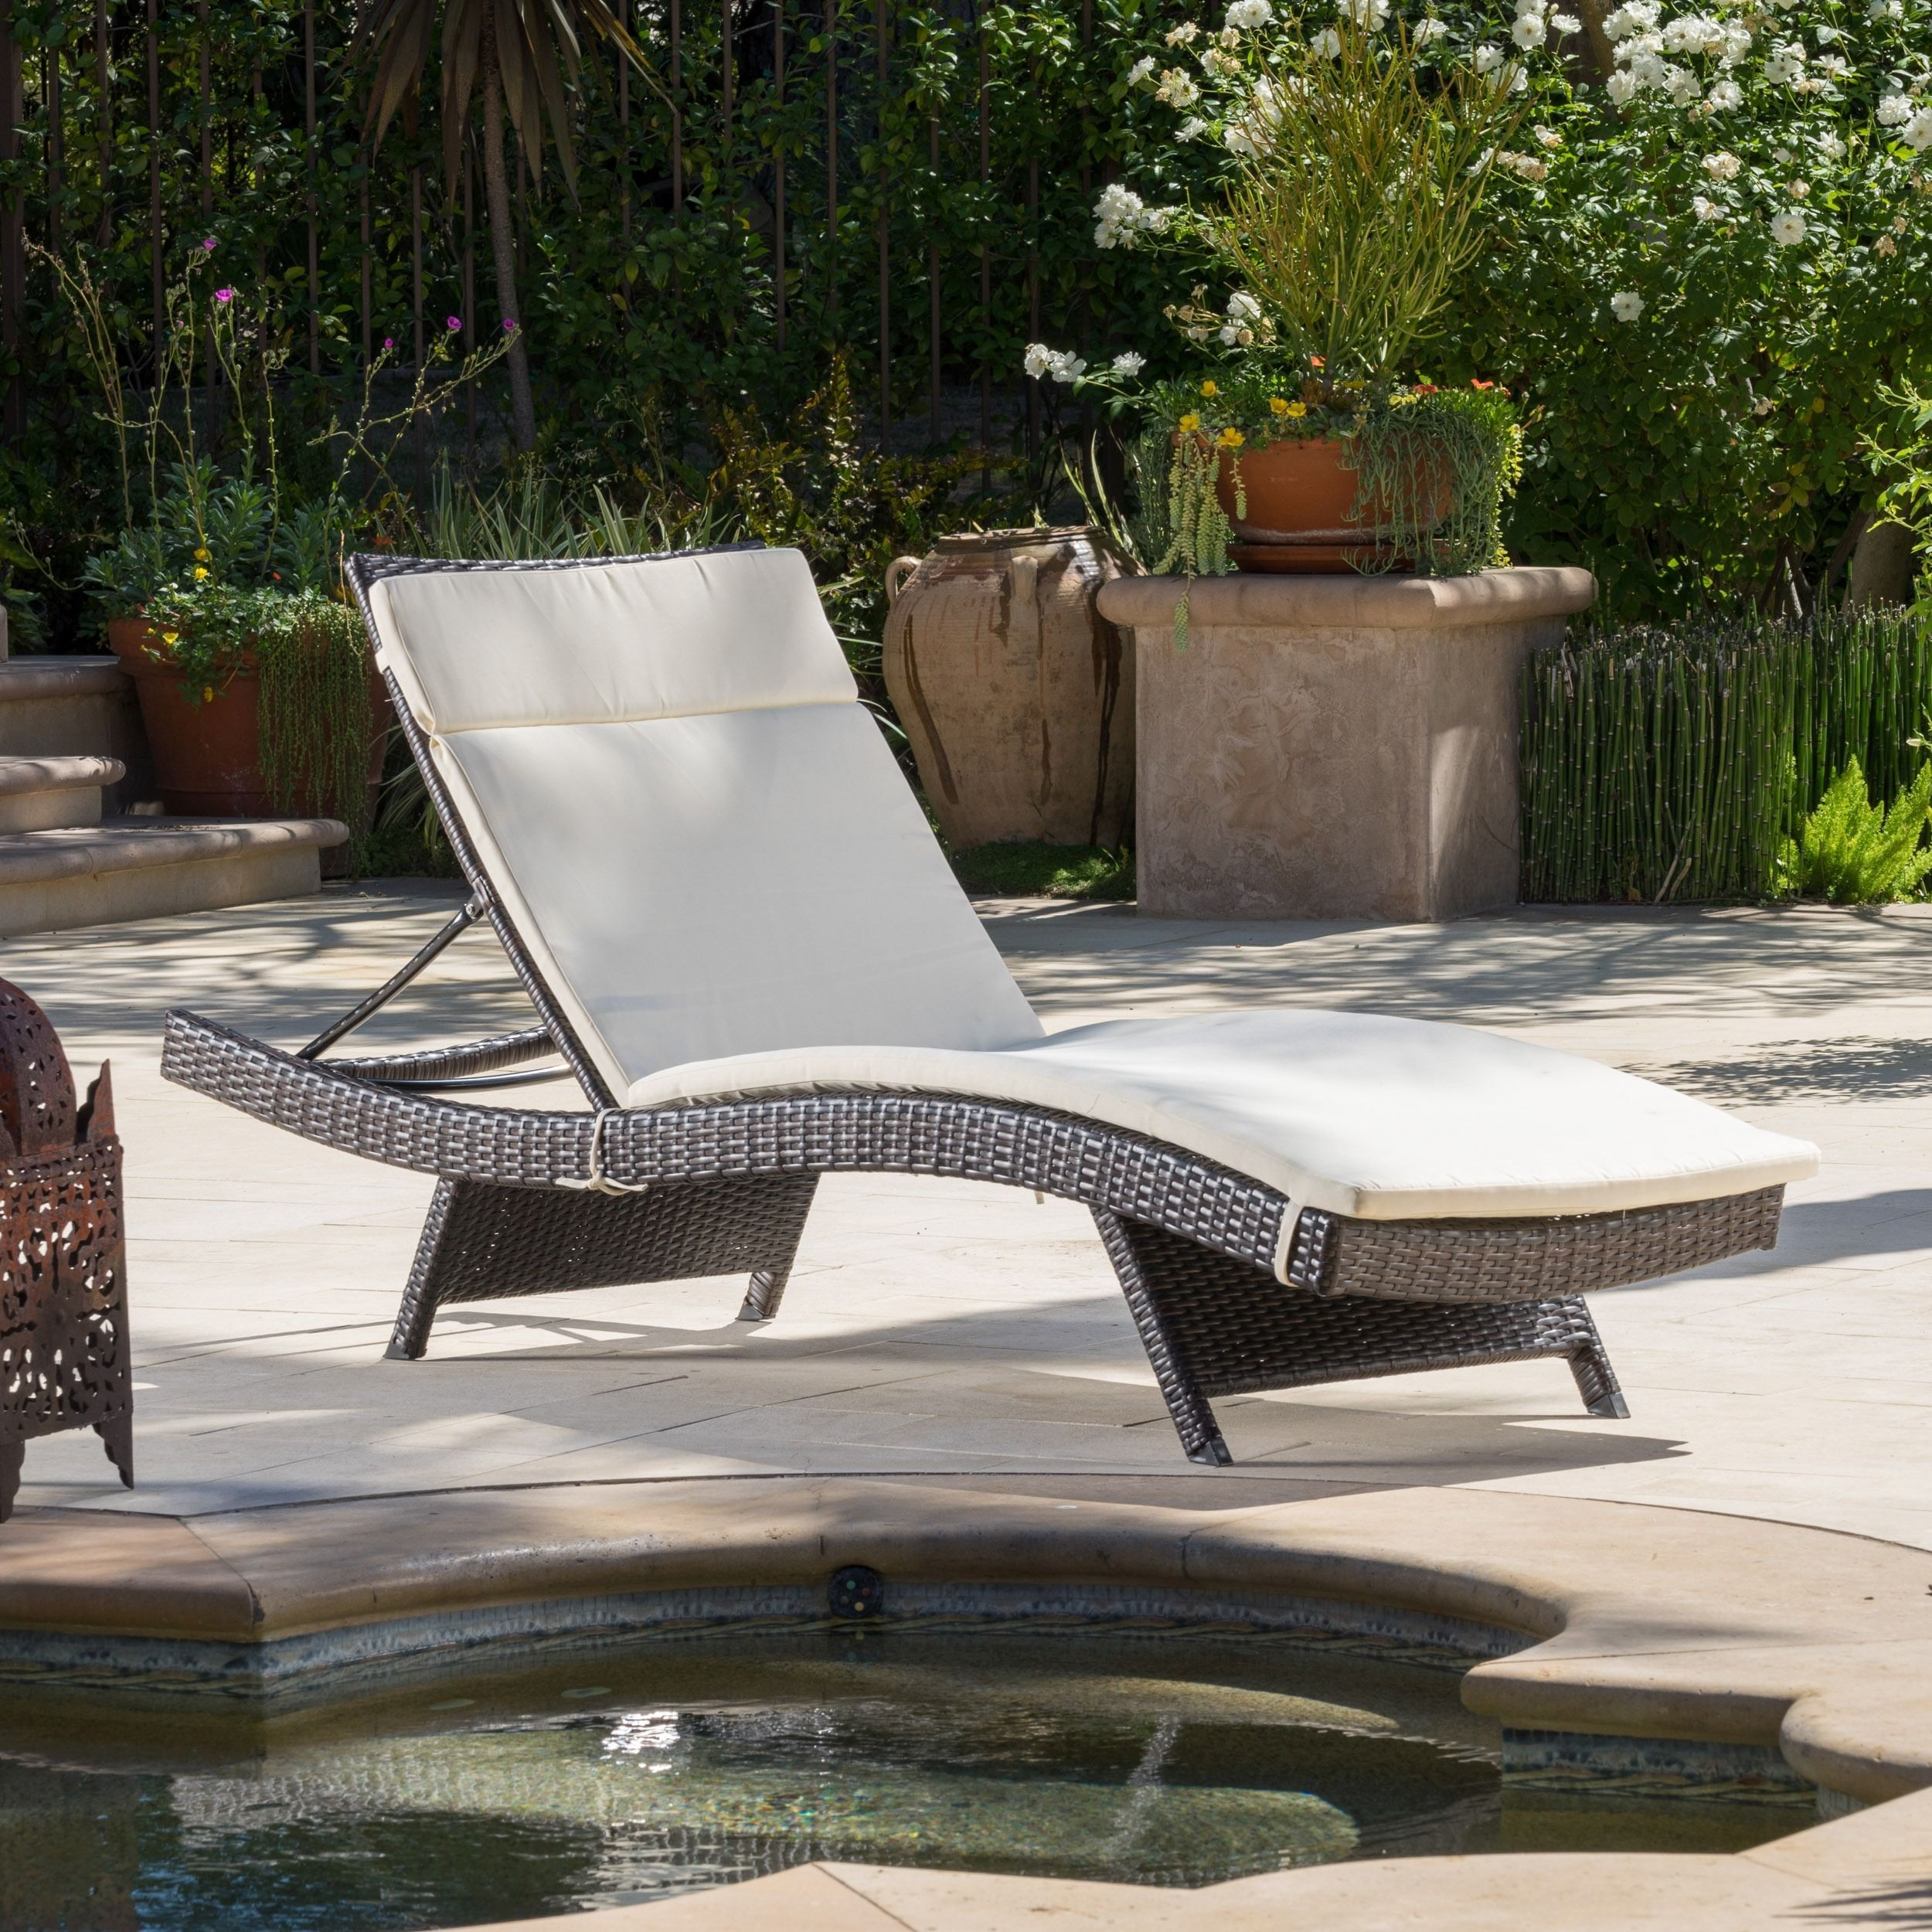 Merveilleux Toscana Outdoor Brown Wicker Adjustable Chaise Lounge With Cushion By  Christopher Knight Home | Overstock.com Shopping   The Best Deals On Chaise  Lounges